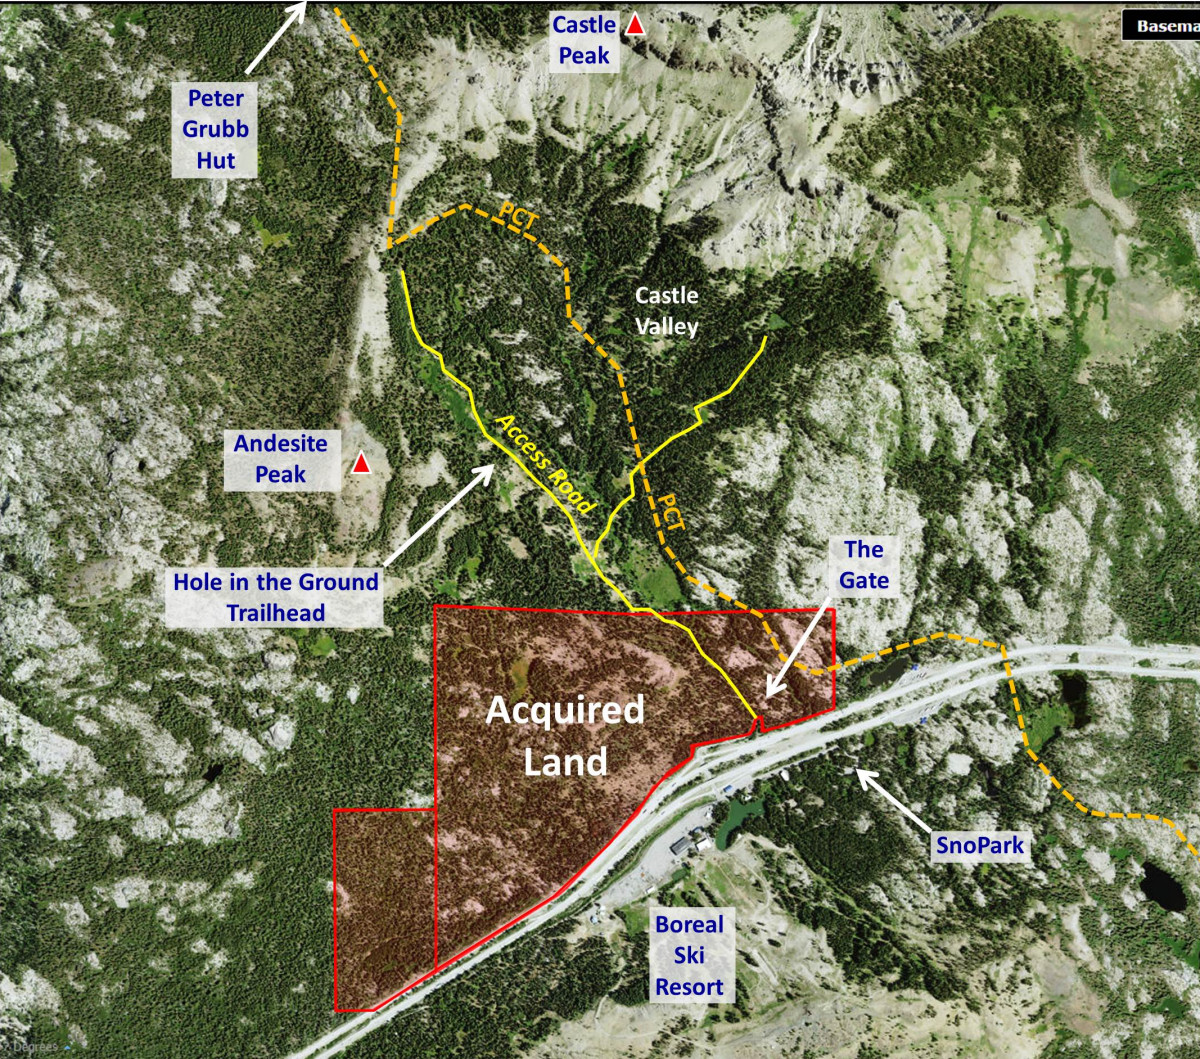 Castle Peak area land acquistion at Donner Summit